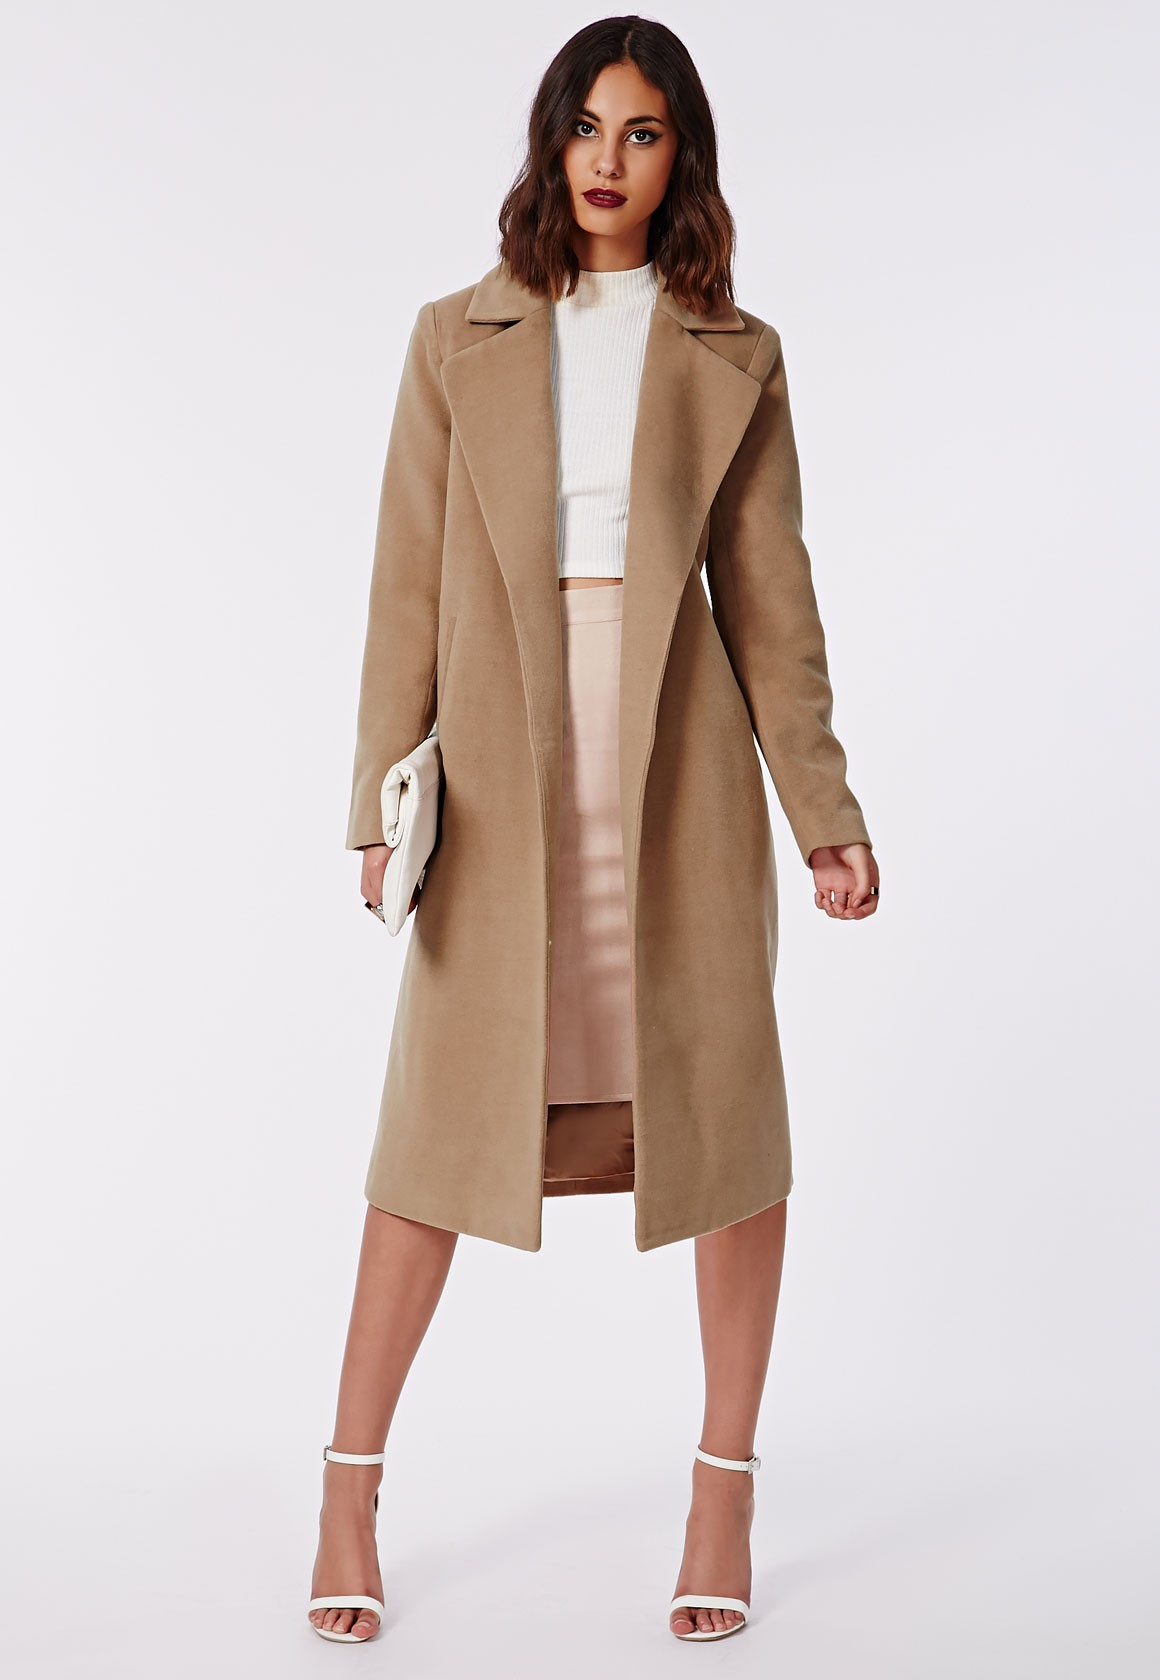 Images of Long Camel Coat - Reikian